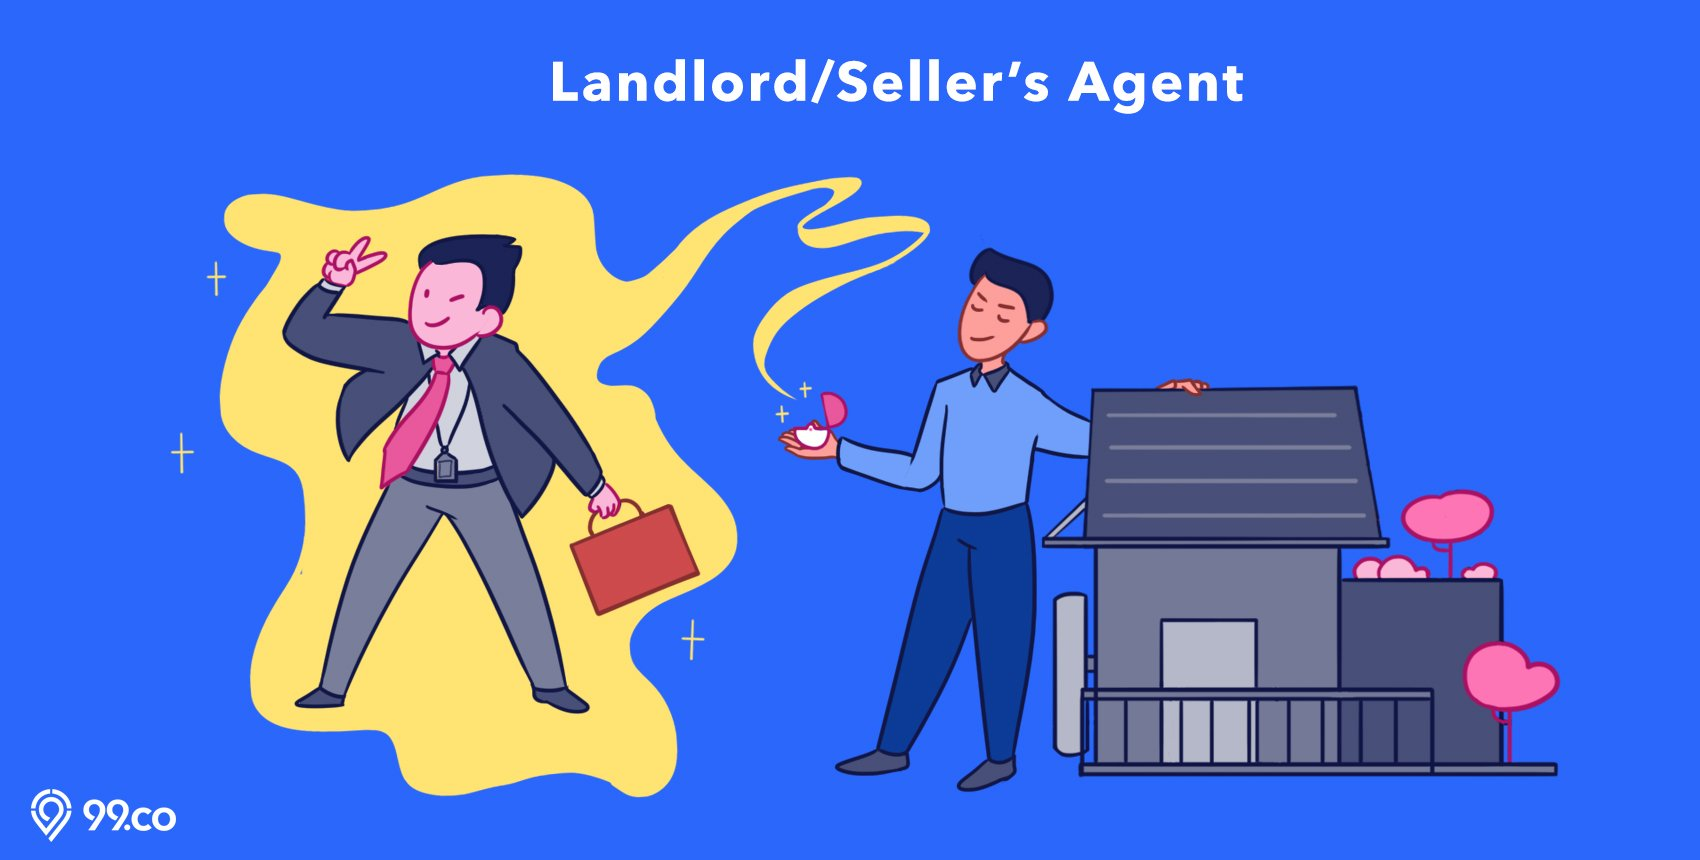 Landlord seller property agents